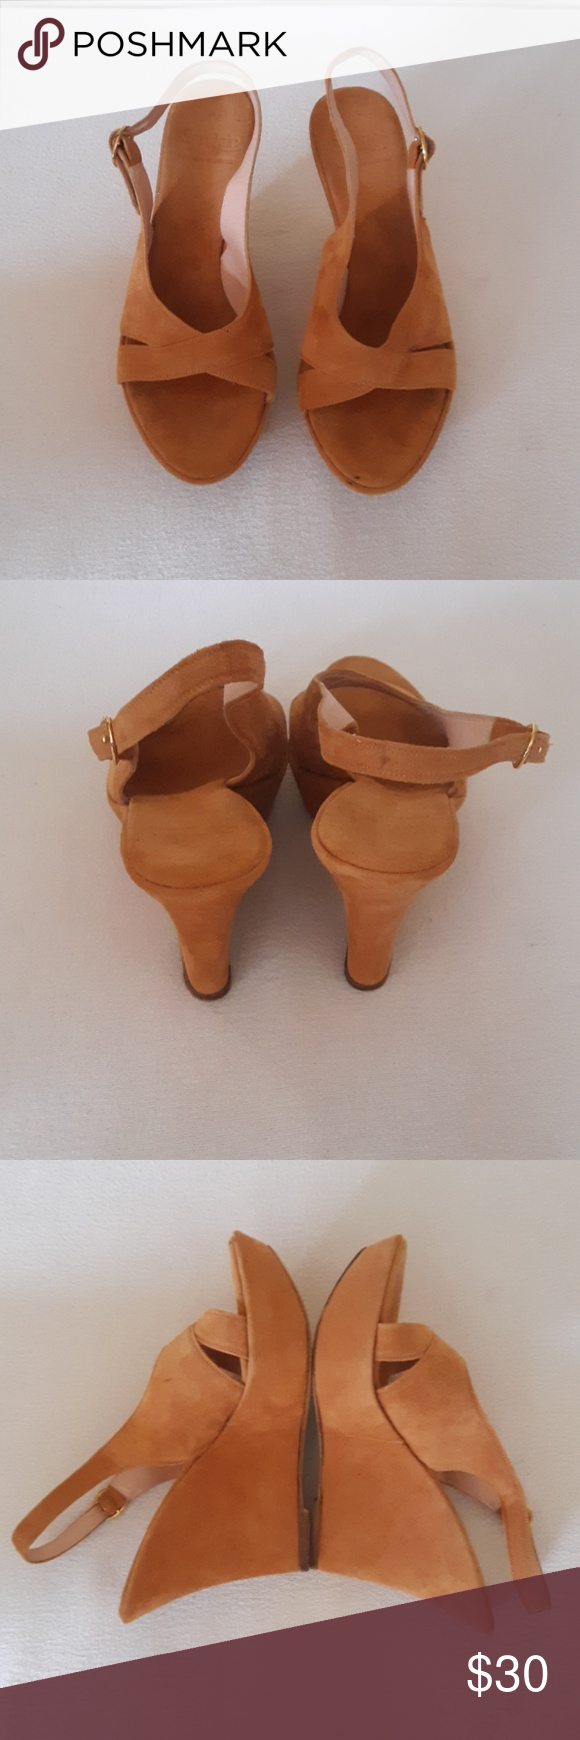 Vero cuoio wedges Cuoio shoes, Wedges, Clothes design